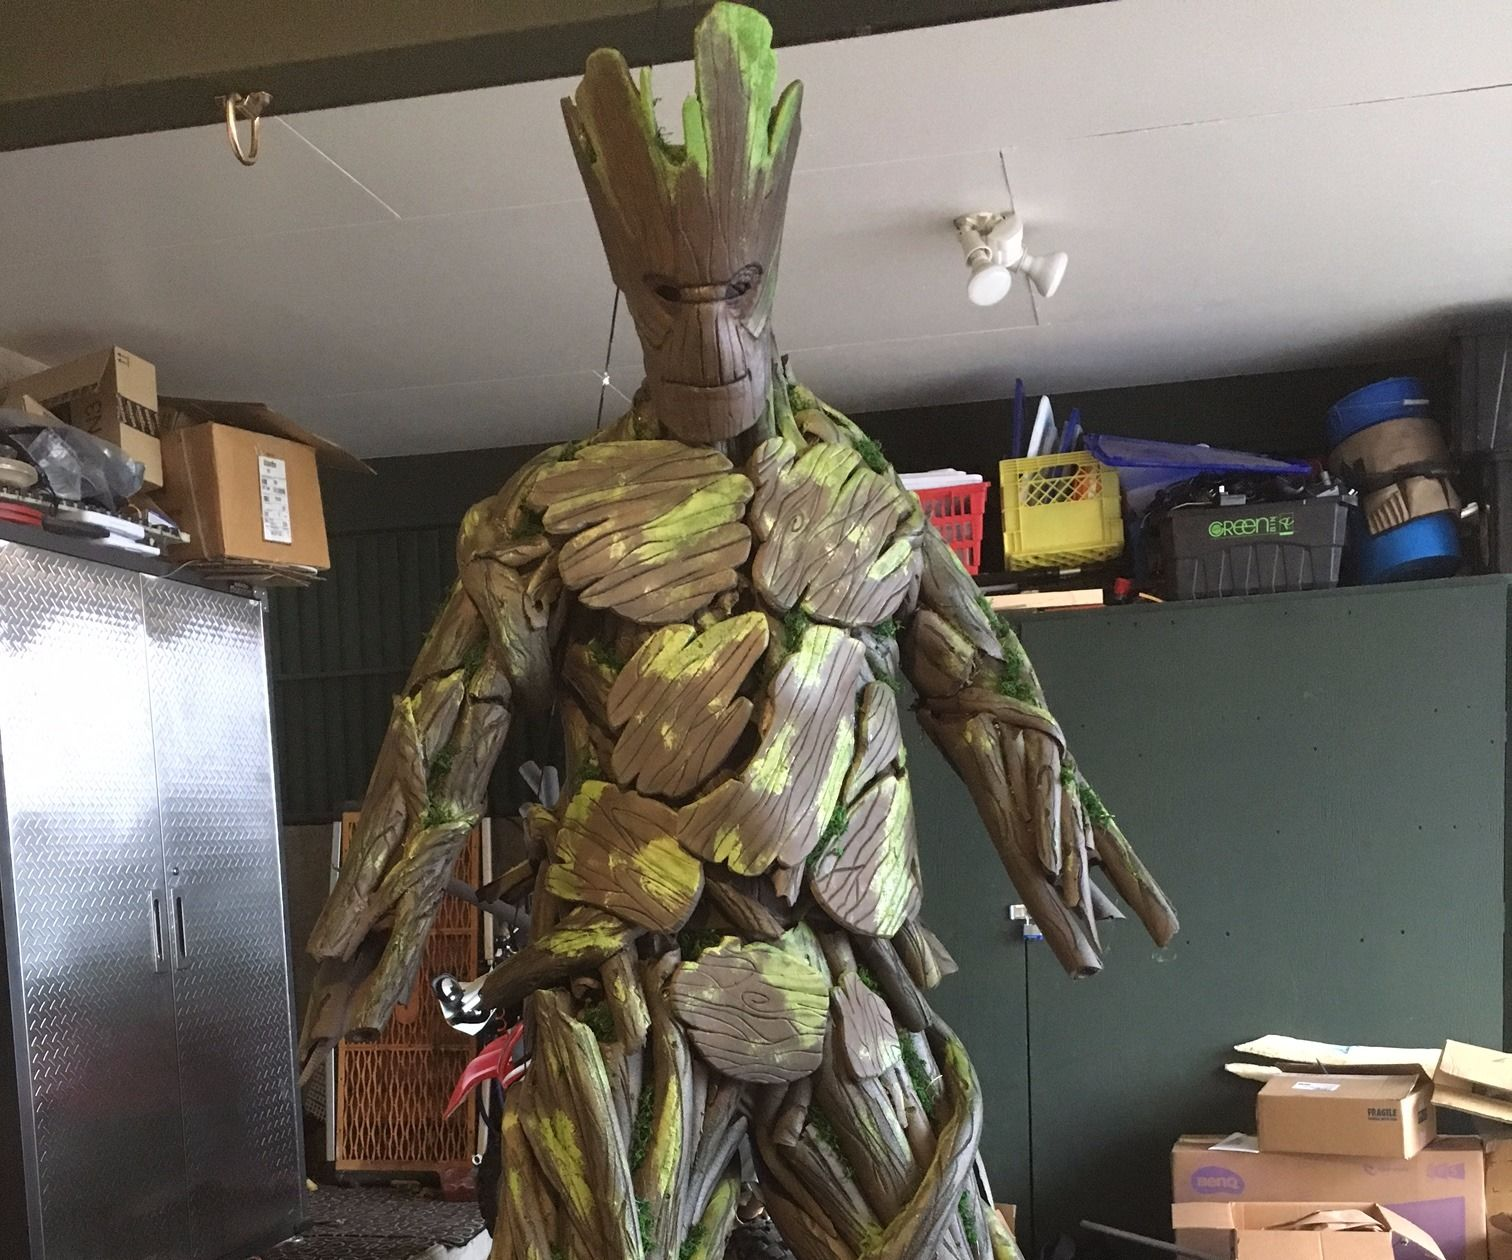 DIY Groot Guardians of the Galaxy Costume - I AM GROOT!